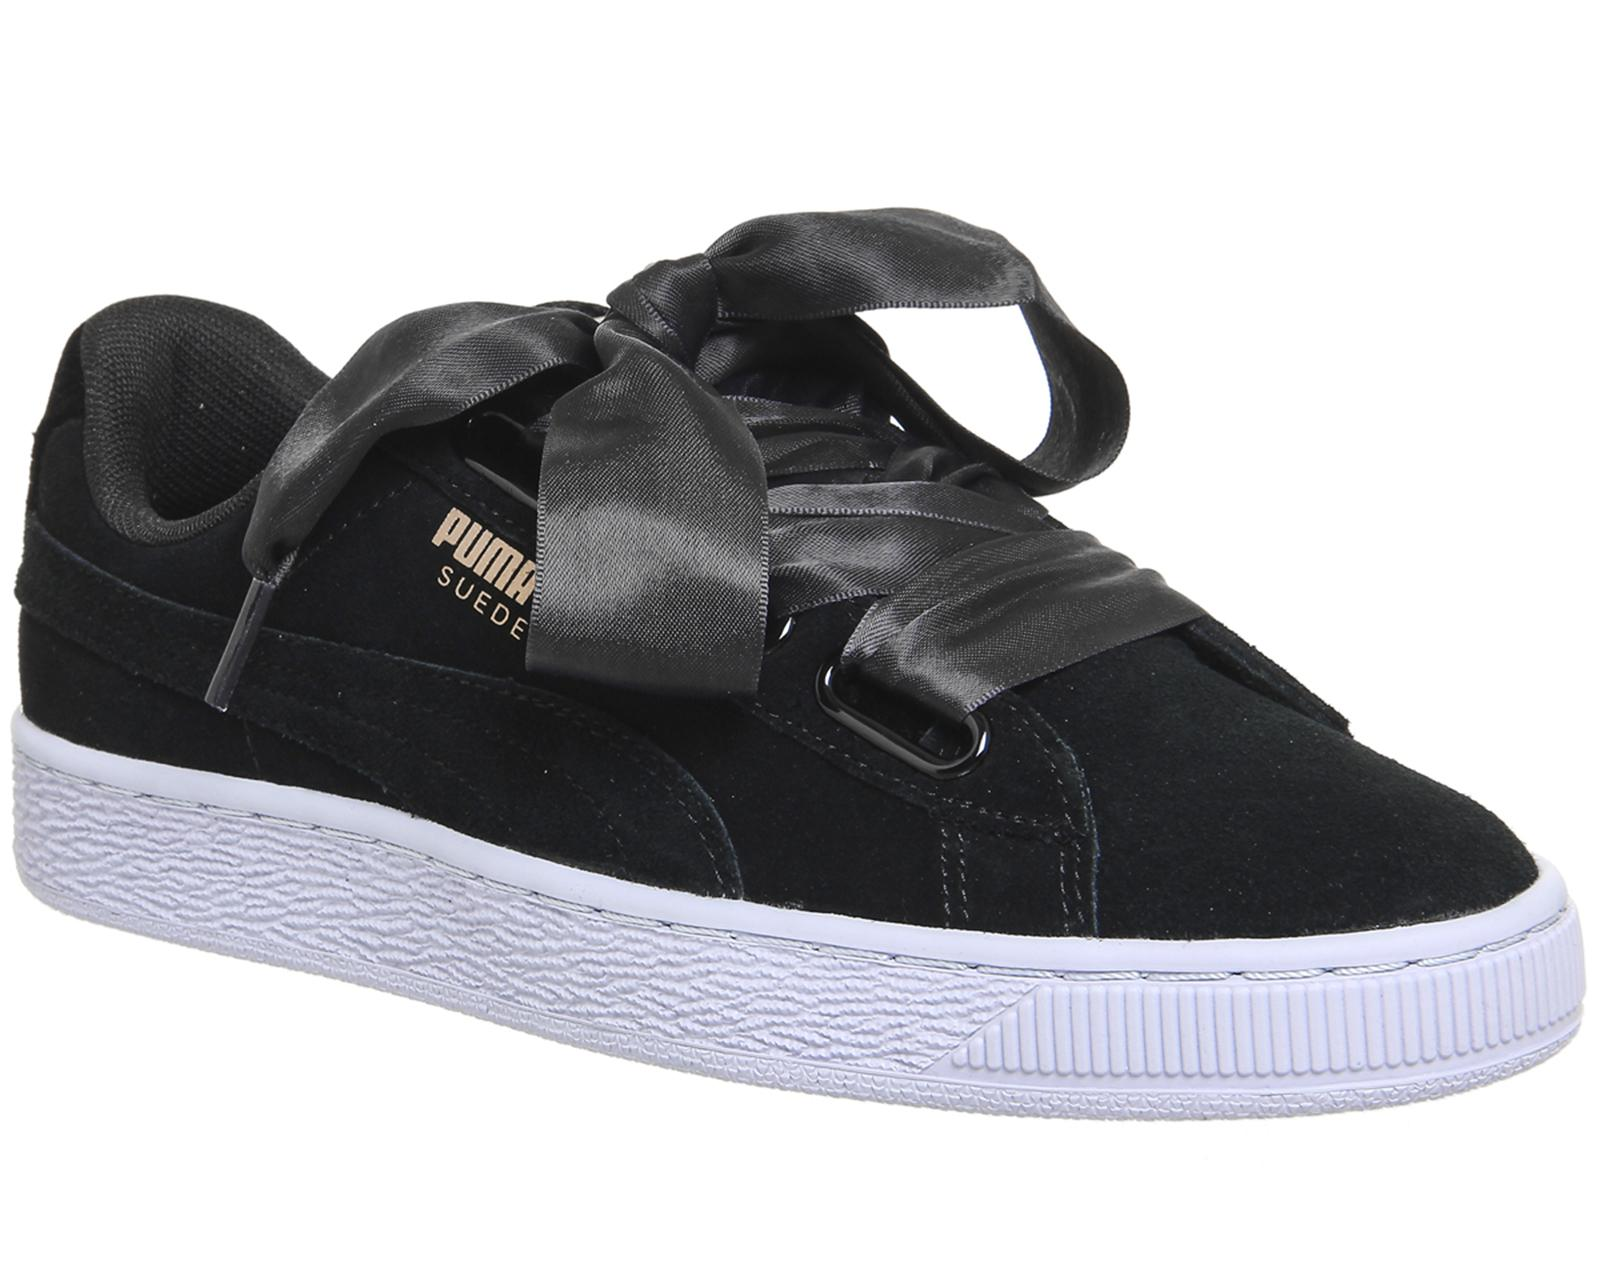 PUMA Suede Heart Trainers in Black Gold